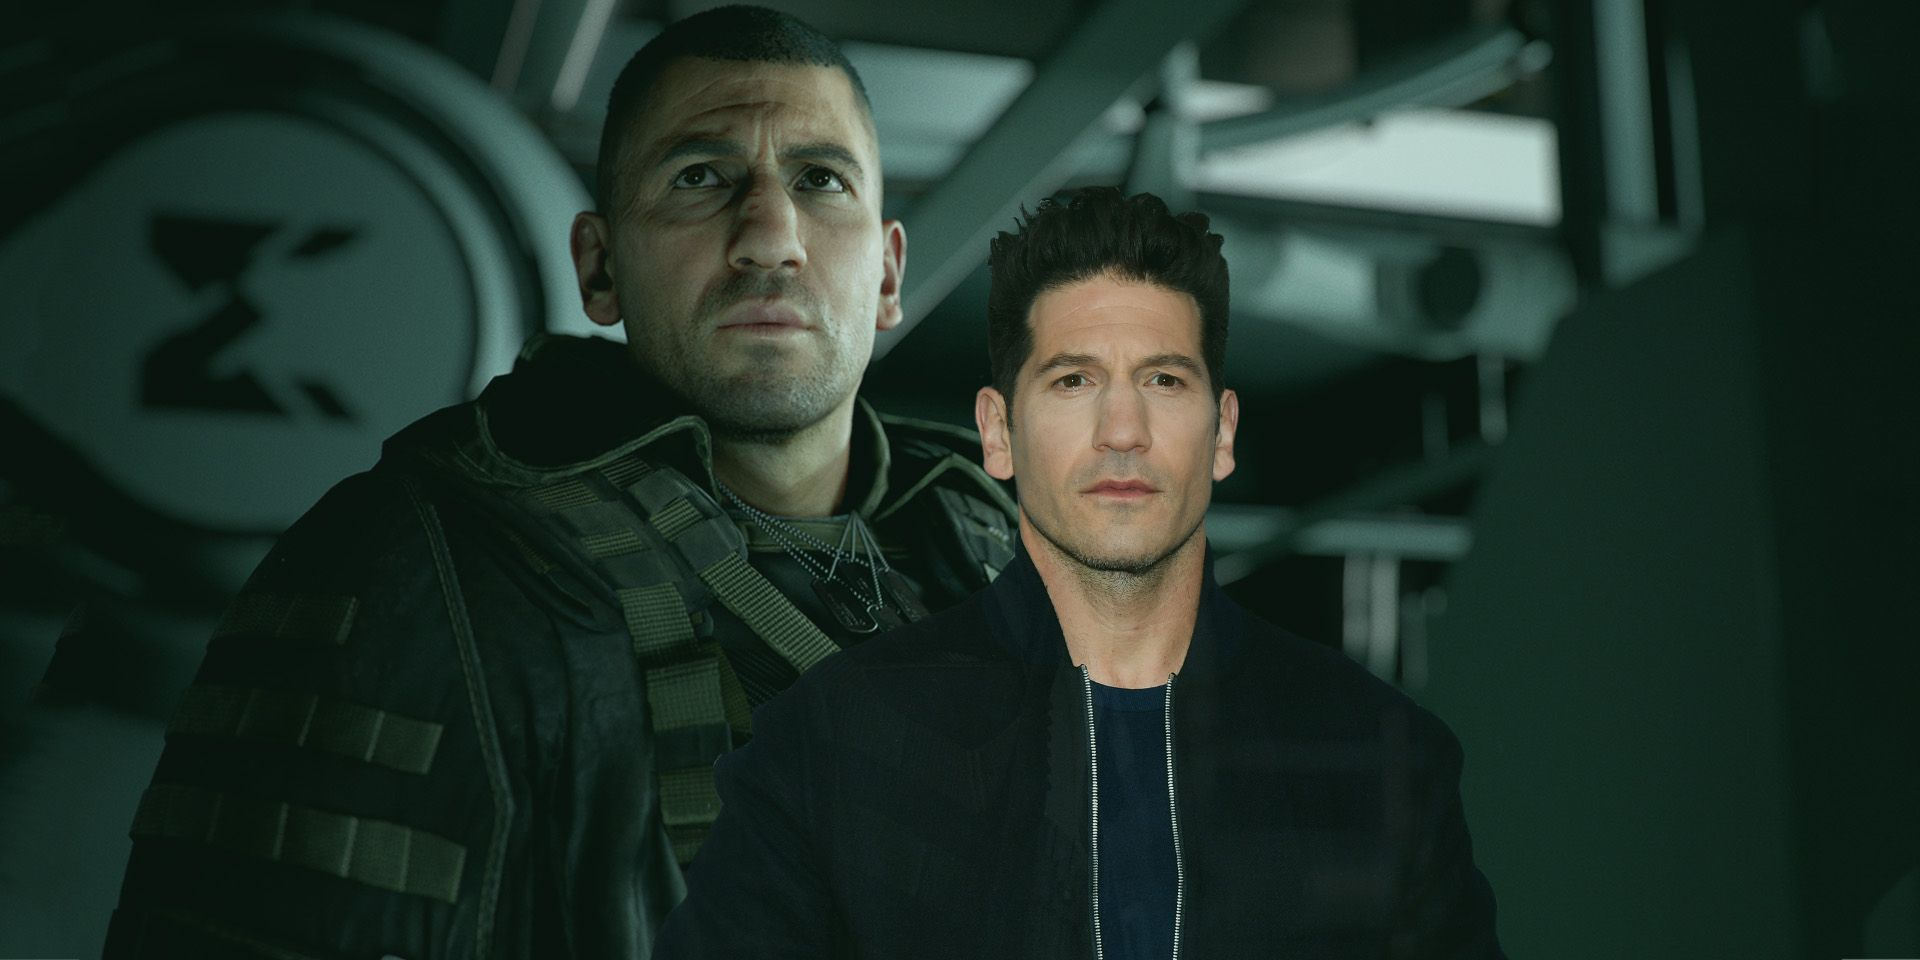 Jon Bernthal Had to Embrace Absurdity to Play Ghost Recon Breakpoint's Super Villain